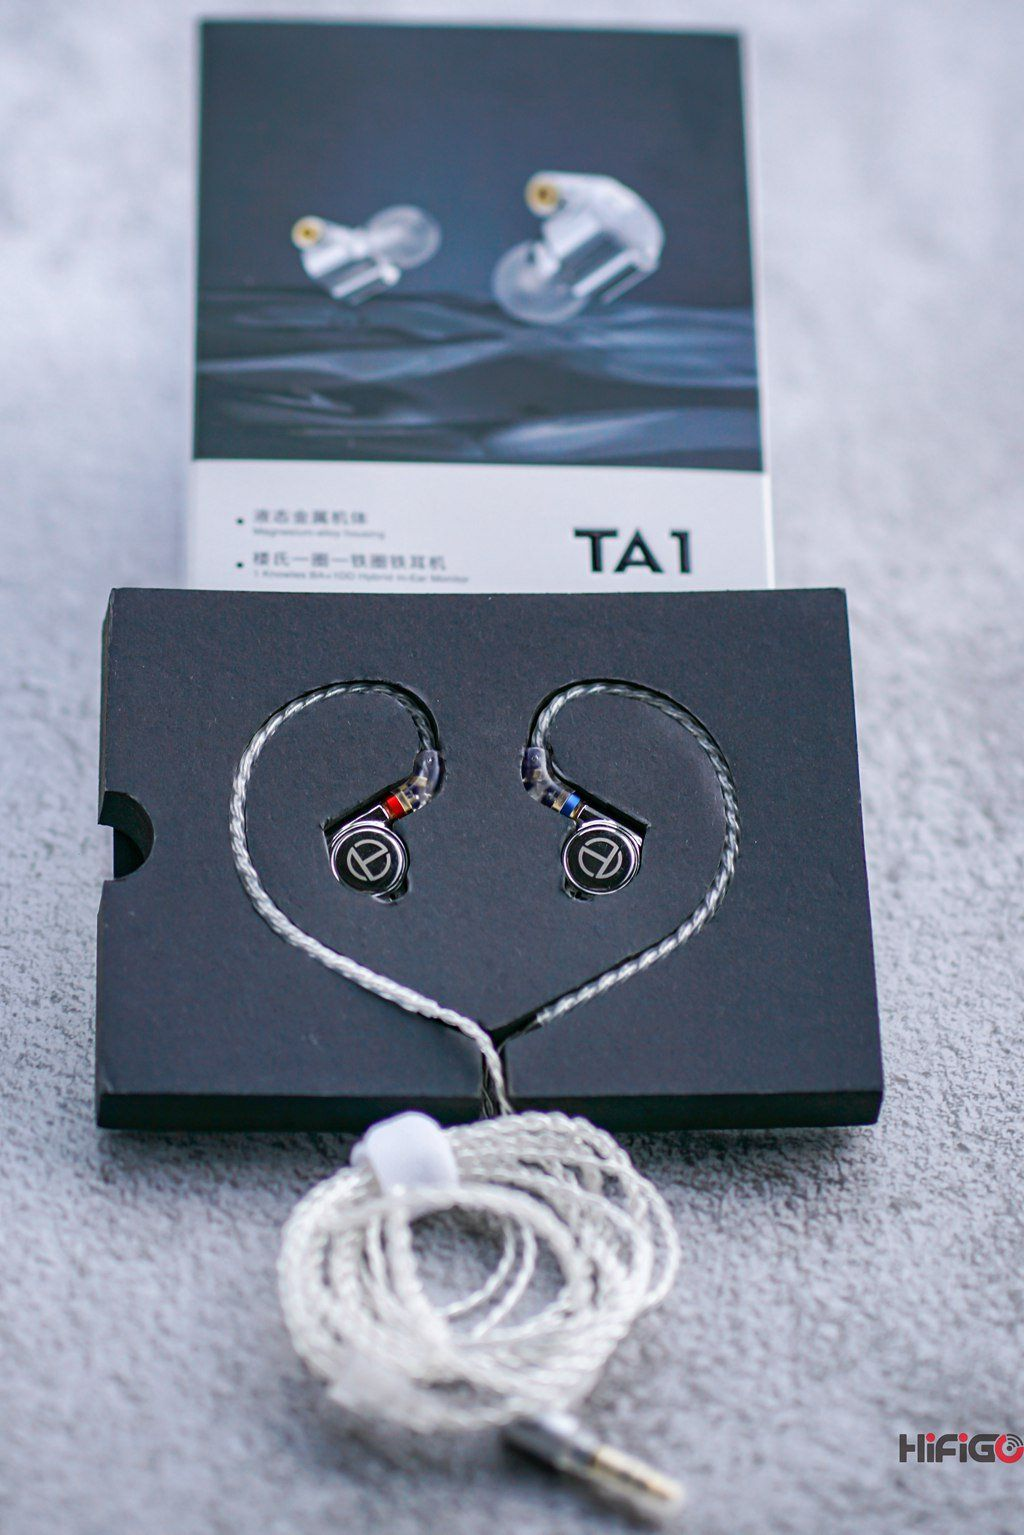 TRN TA1 Latest Dual Driver Hybrid In-Ear Monitors Released